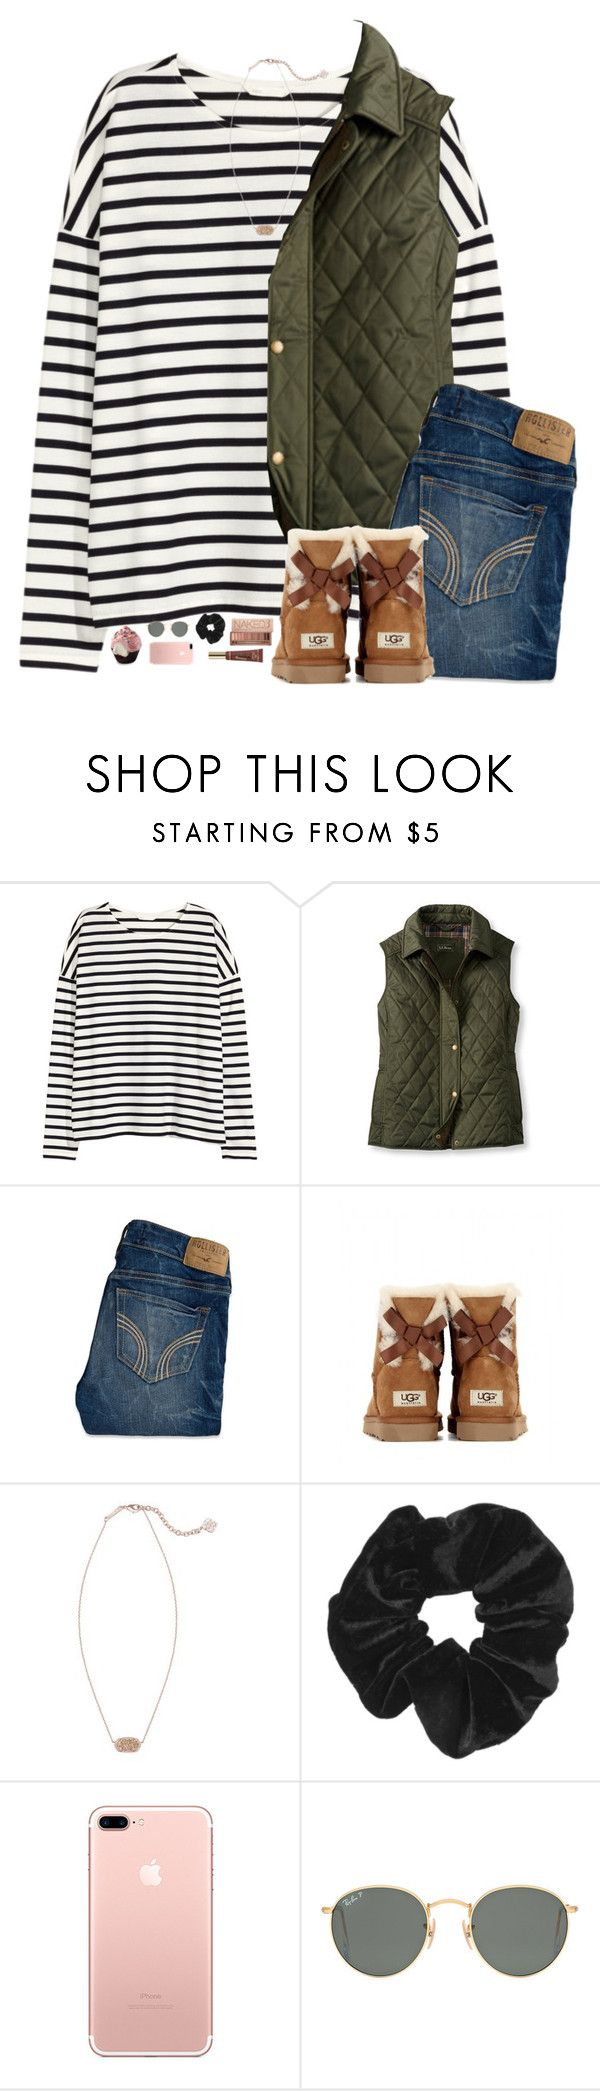 """Cant stop thinking about if I'm going to make the team"" by pineappleprincess1012 ❤ liked on Polyvore featuring H&M, L.L.Bean, Hollister Co., UGG Australia, Kendra Scott, Urban Decay, Topshop, Ray-Ban and Too Faced Cosmetics"